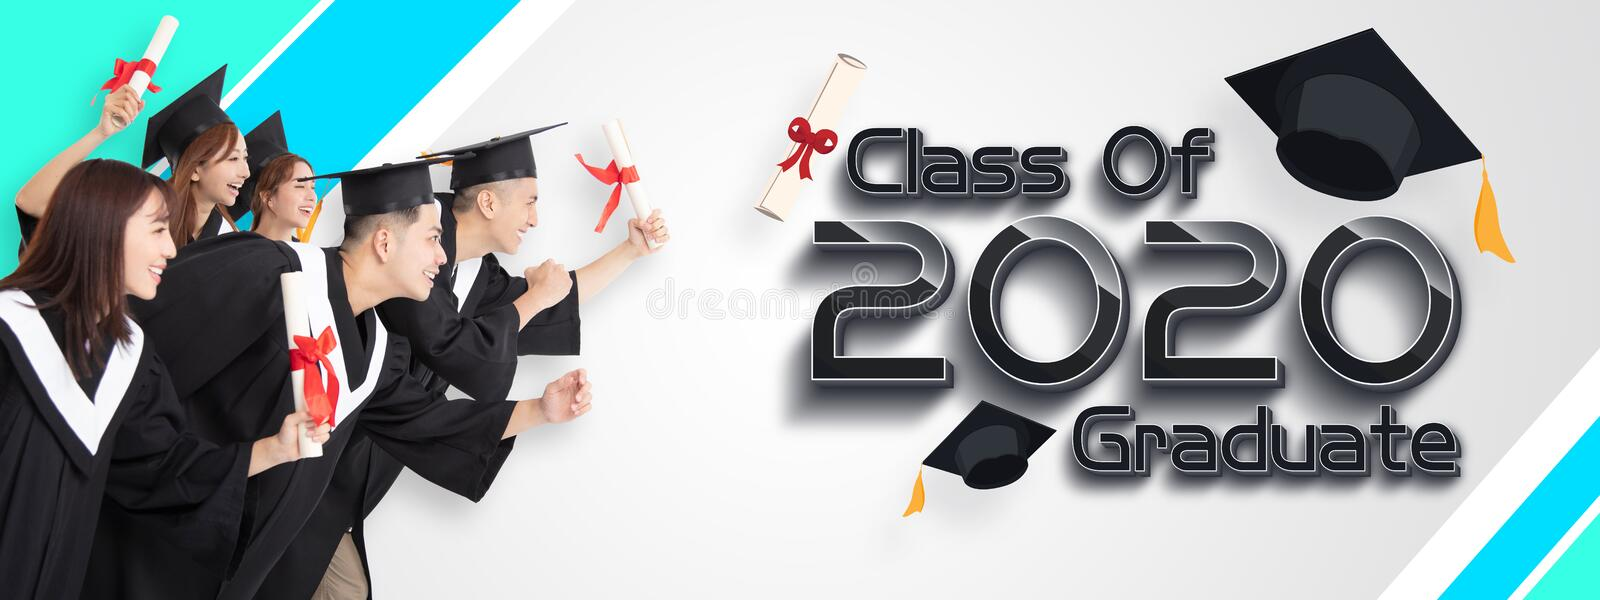 Group of Students Running and Celebrating Graduation 2020 stock photo